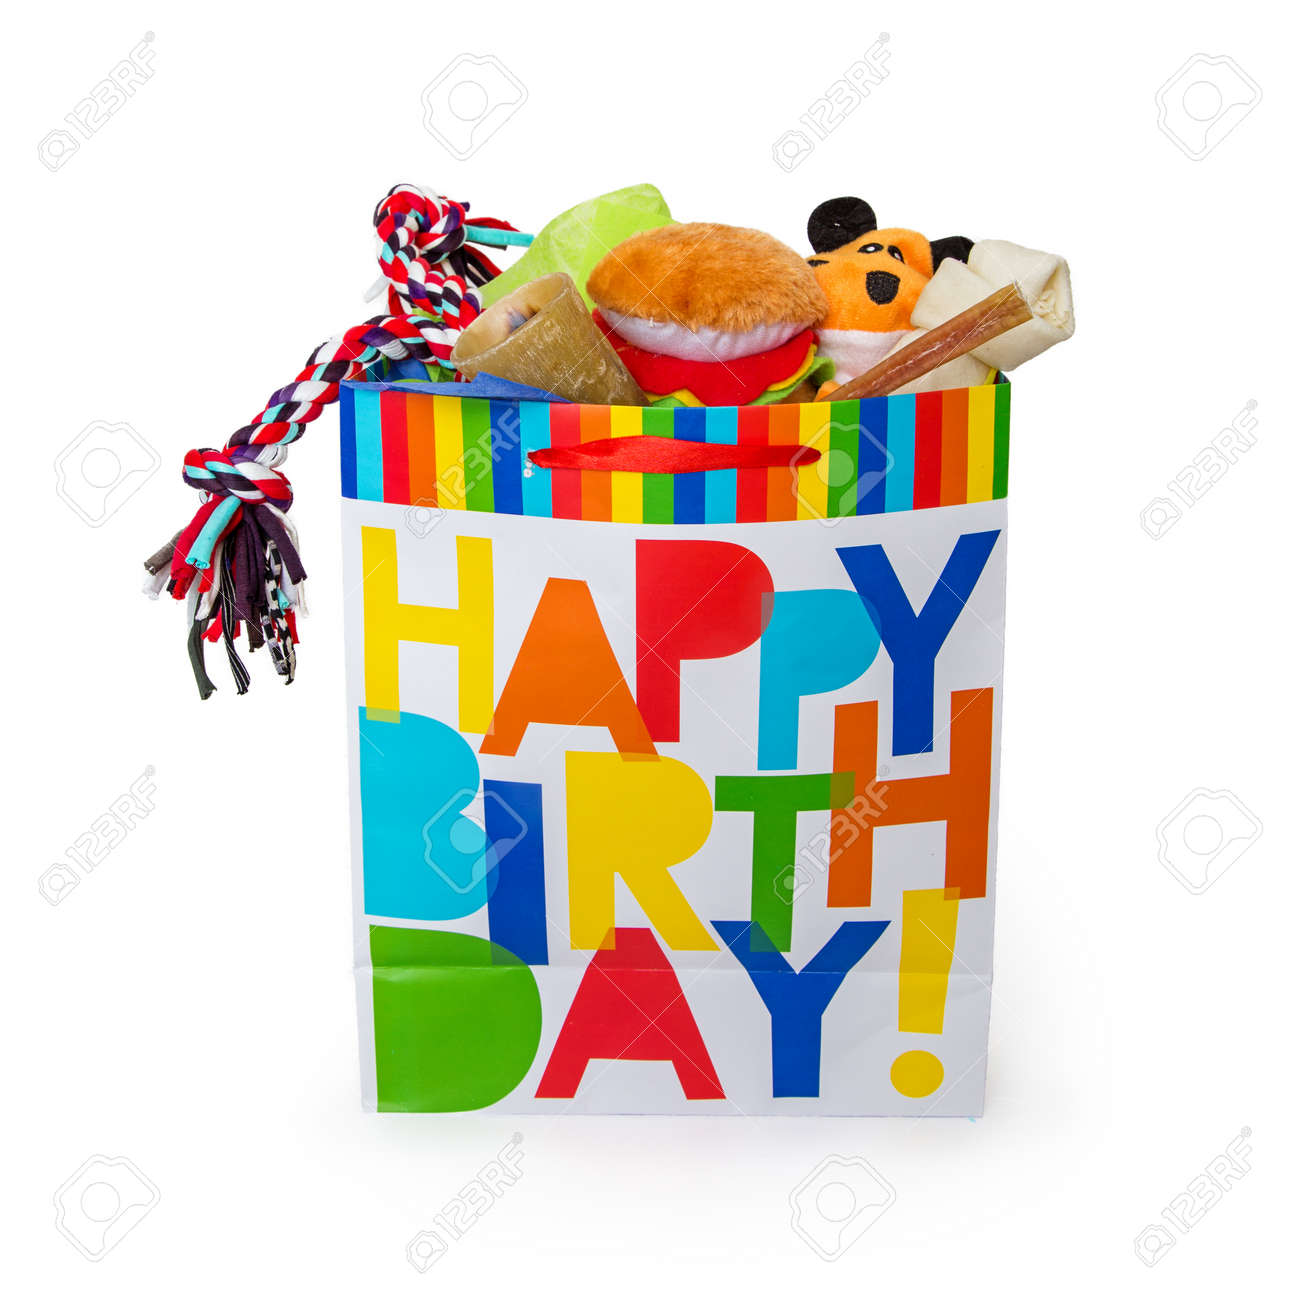 Colorful Happy Birthday Gift Bag Filled With Toys And Treats For A Pet Dog Stock Photo